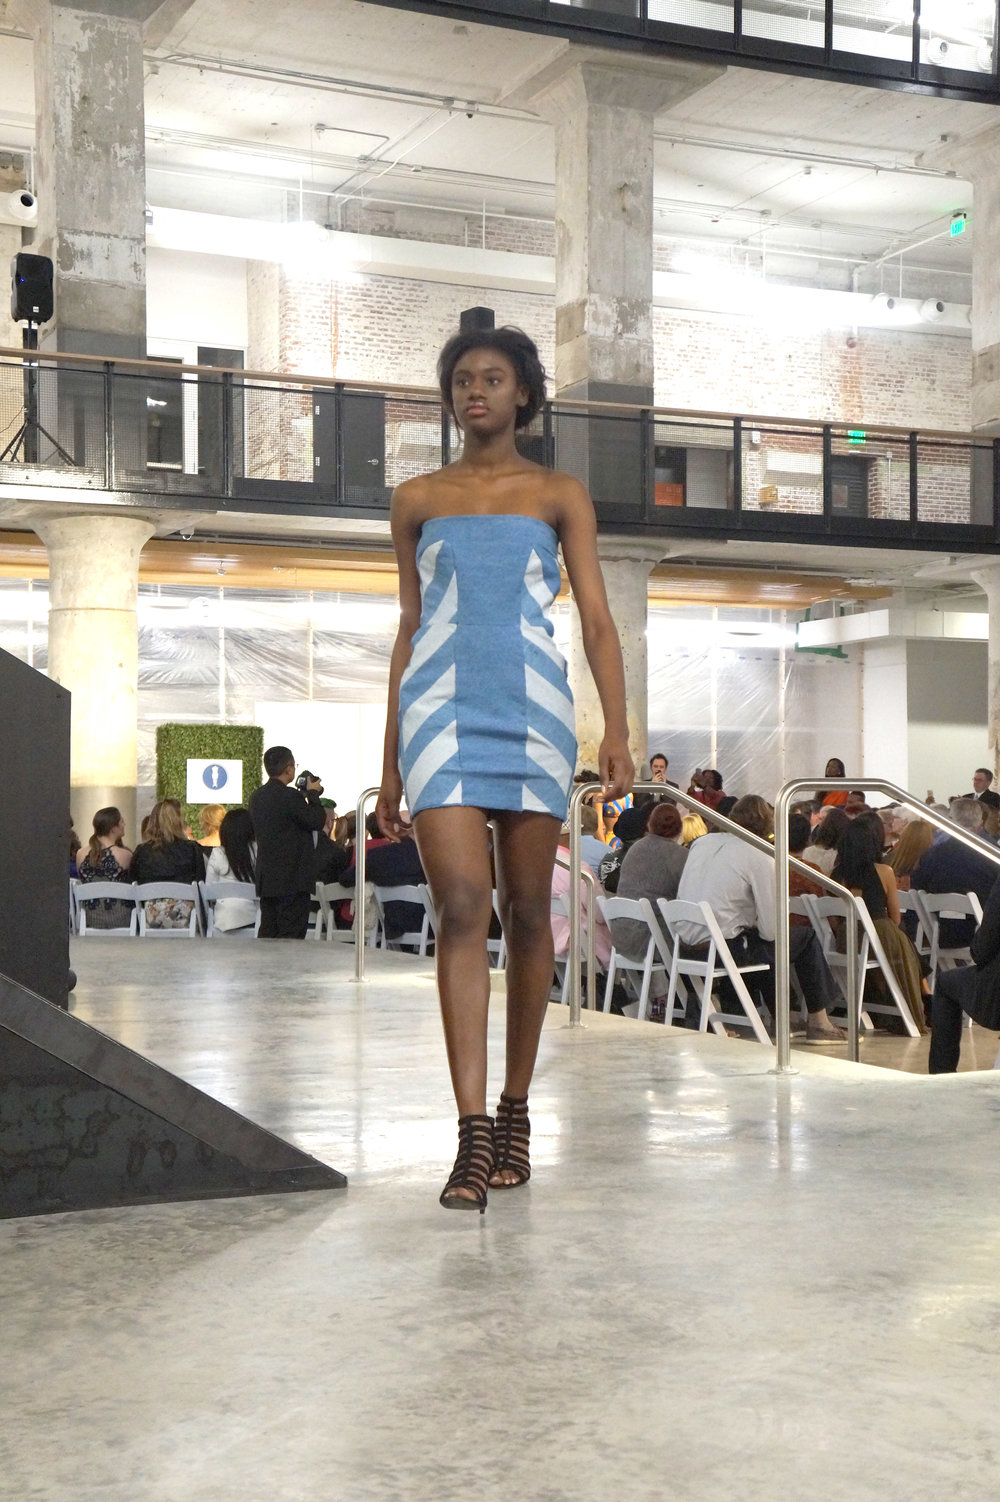 Andrea Fenise Memphis Fashion Blogger shares #memphisfashionweek's featured designer's show